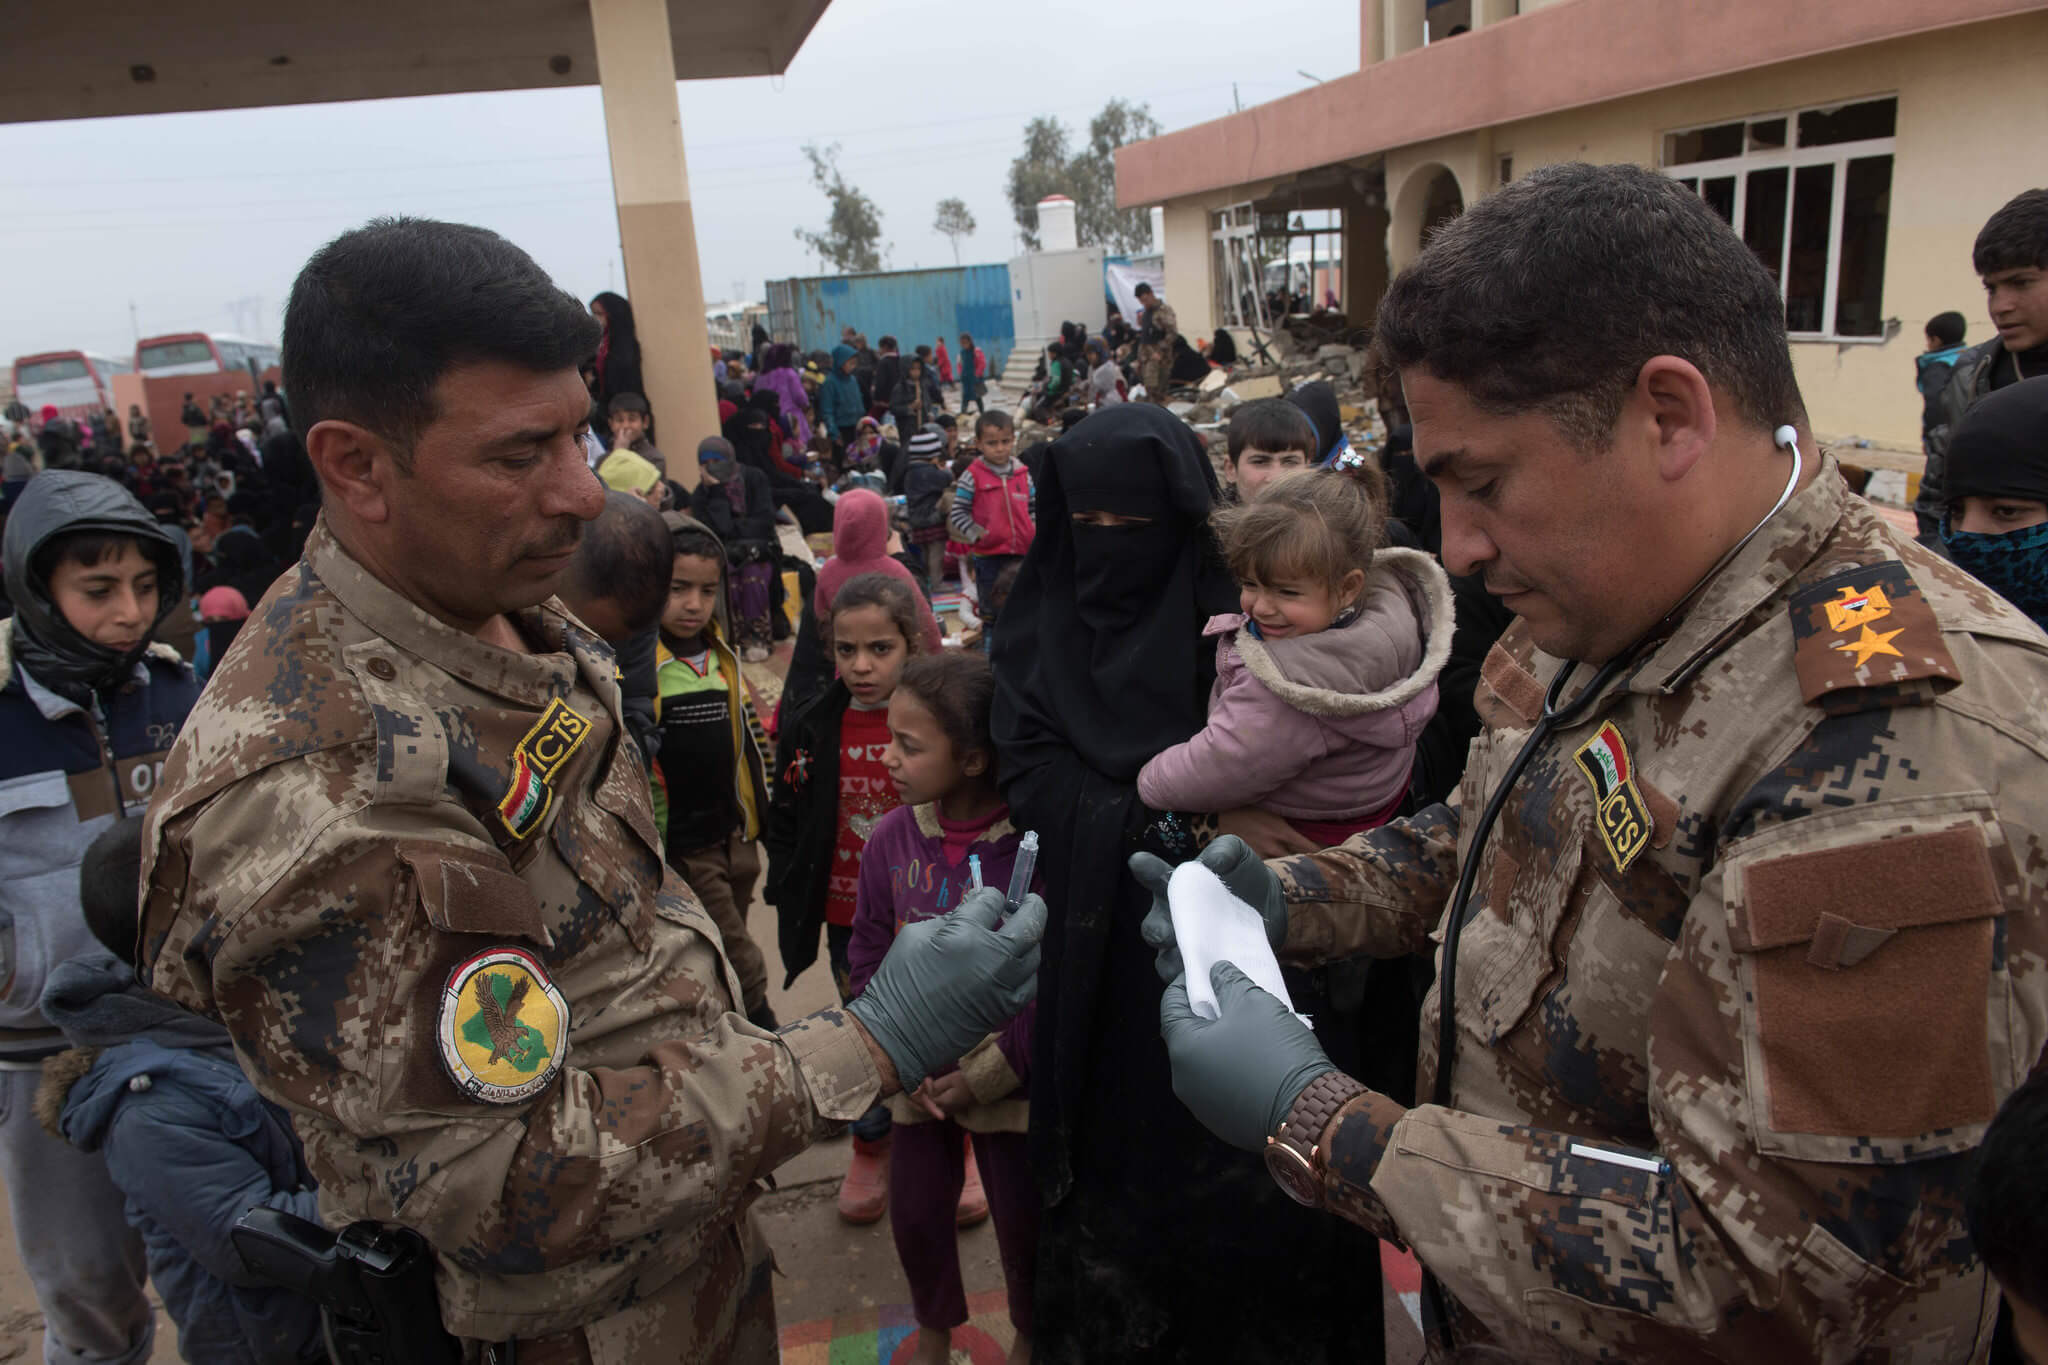 Iraqi Counter Terrorism Service surgeon Lt. Col. Hayder Al Sudani, right, and Sallah Kahdum, treat patients at a processing station for internally displaced people near Mosul, Iraq, on March 3, 2017.